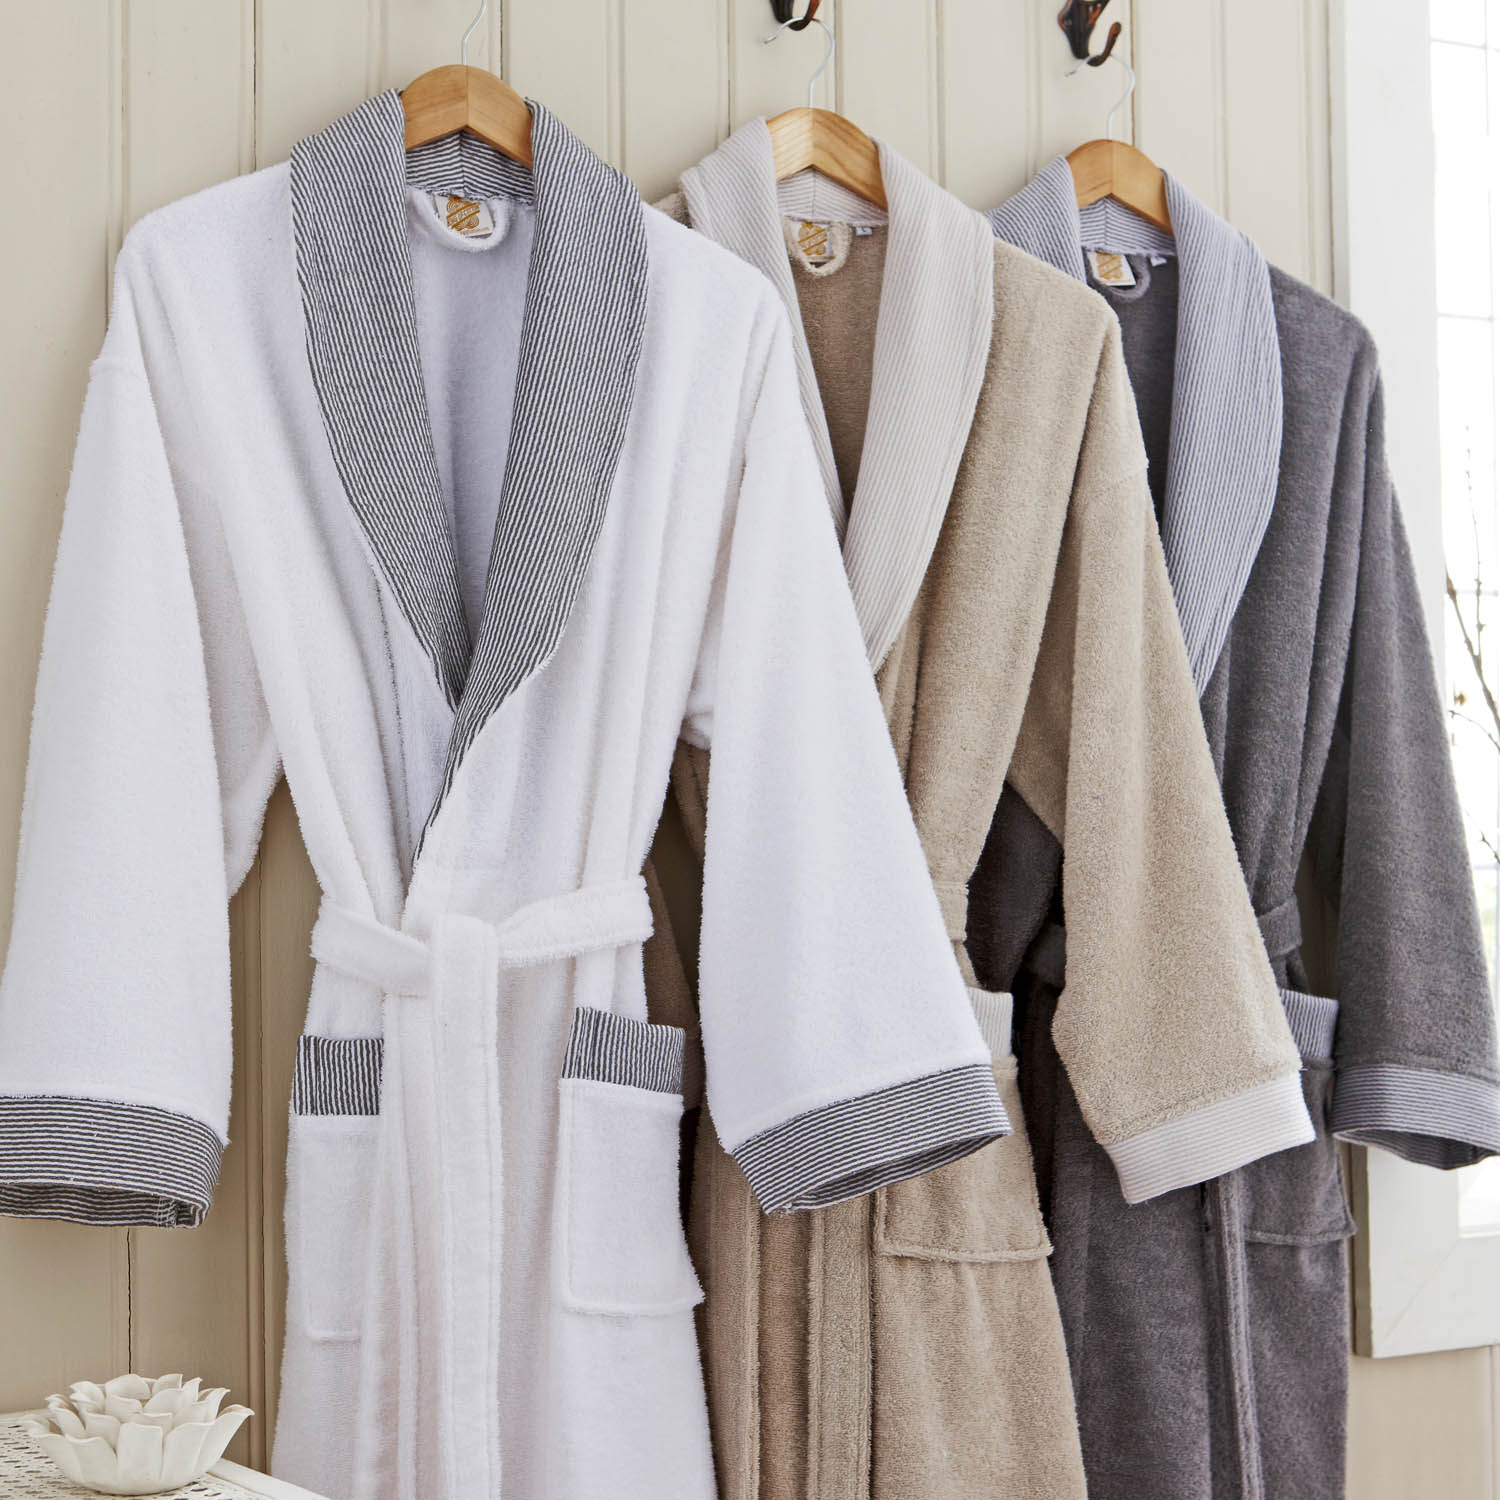 Spa-Style-Monte-Carlo-Towelling-Bathrobe.jpg